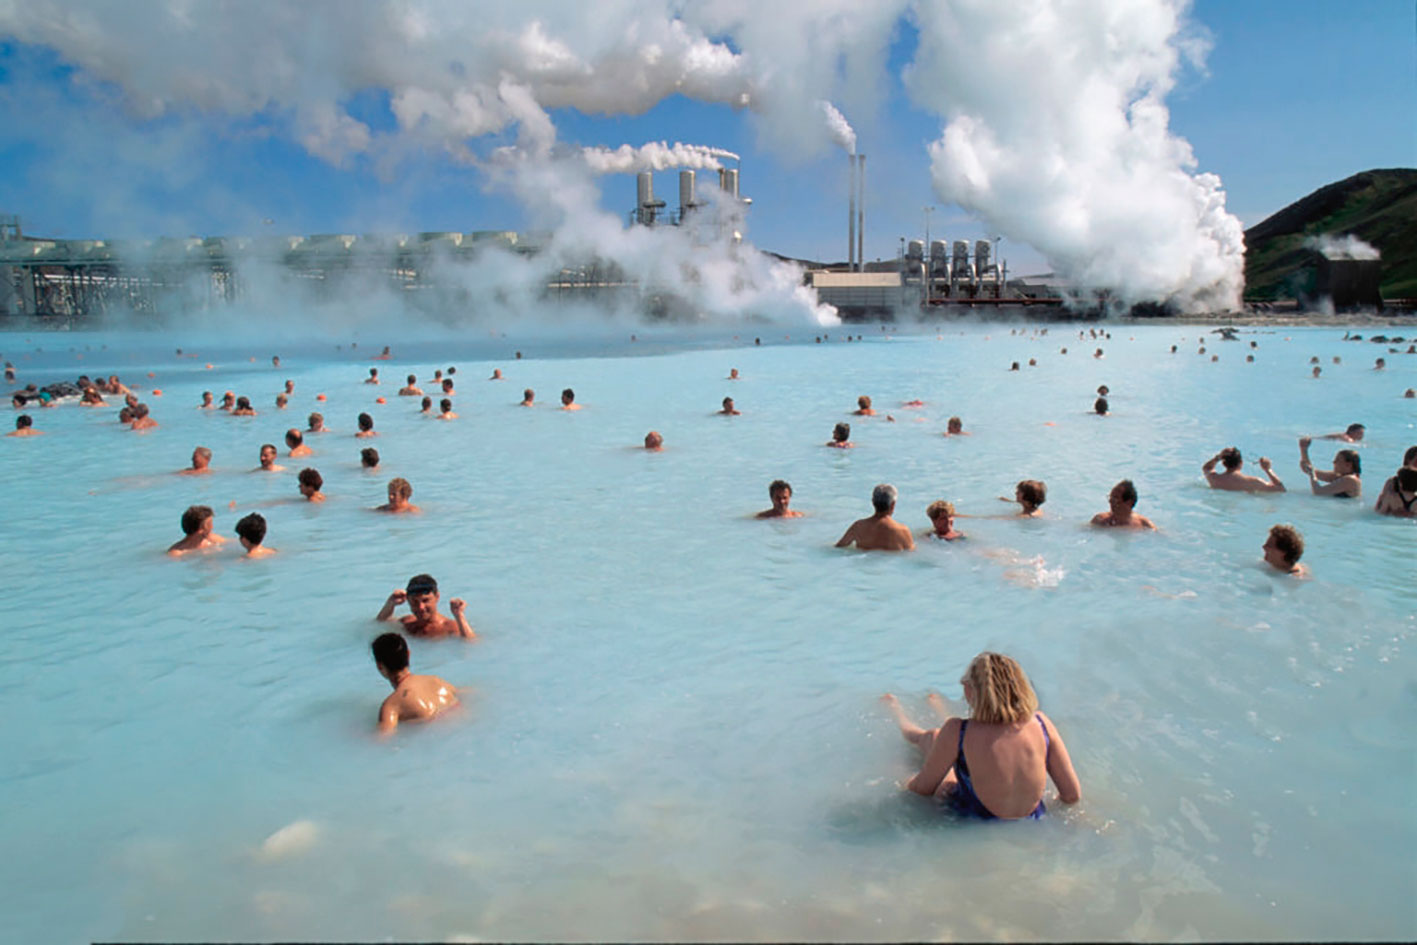 (2) People bathing in blue lagoon © Gettyimages